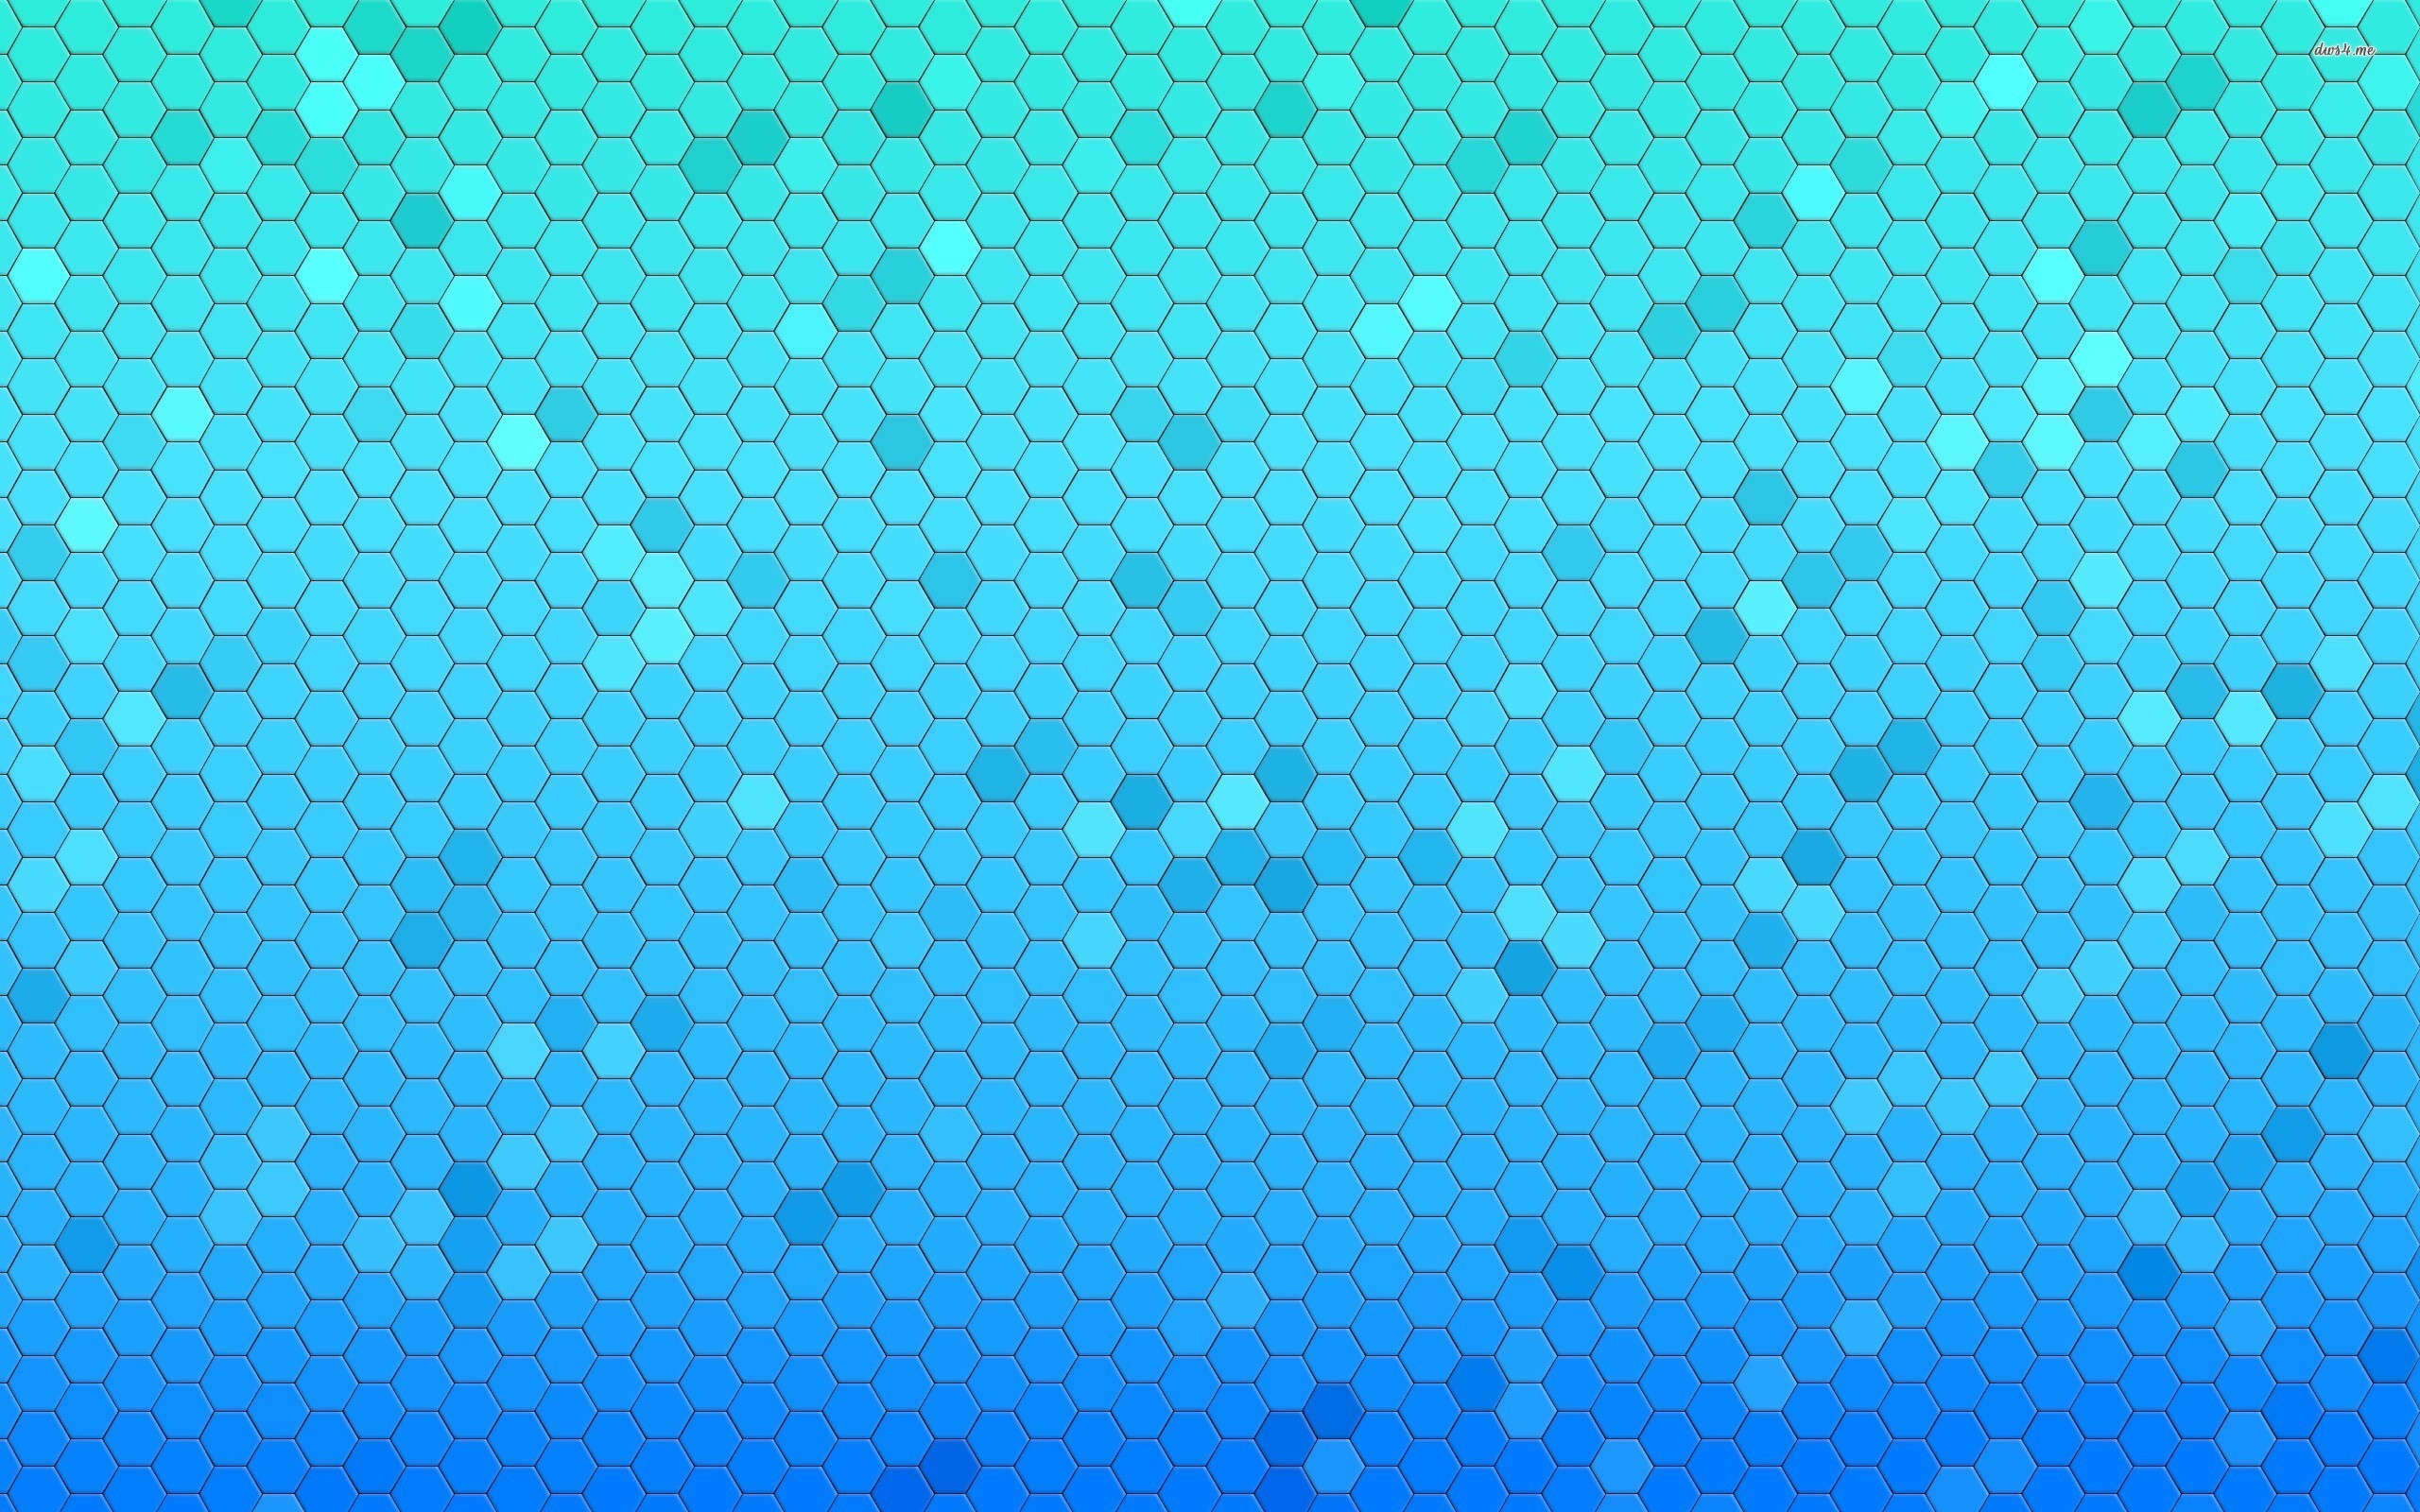 2560x1600 15437-blue-honeycomb-pattern-2560×1600-abstract-wallpaper